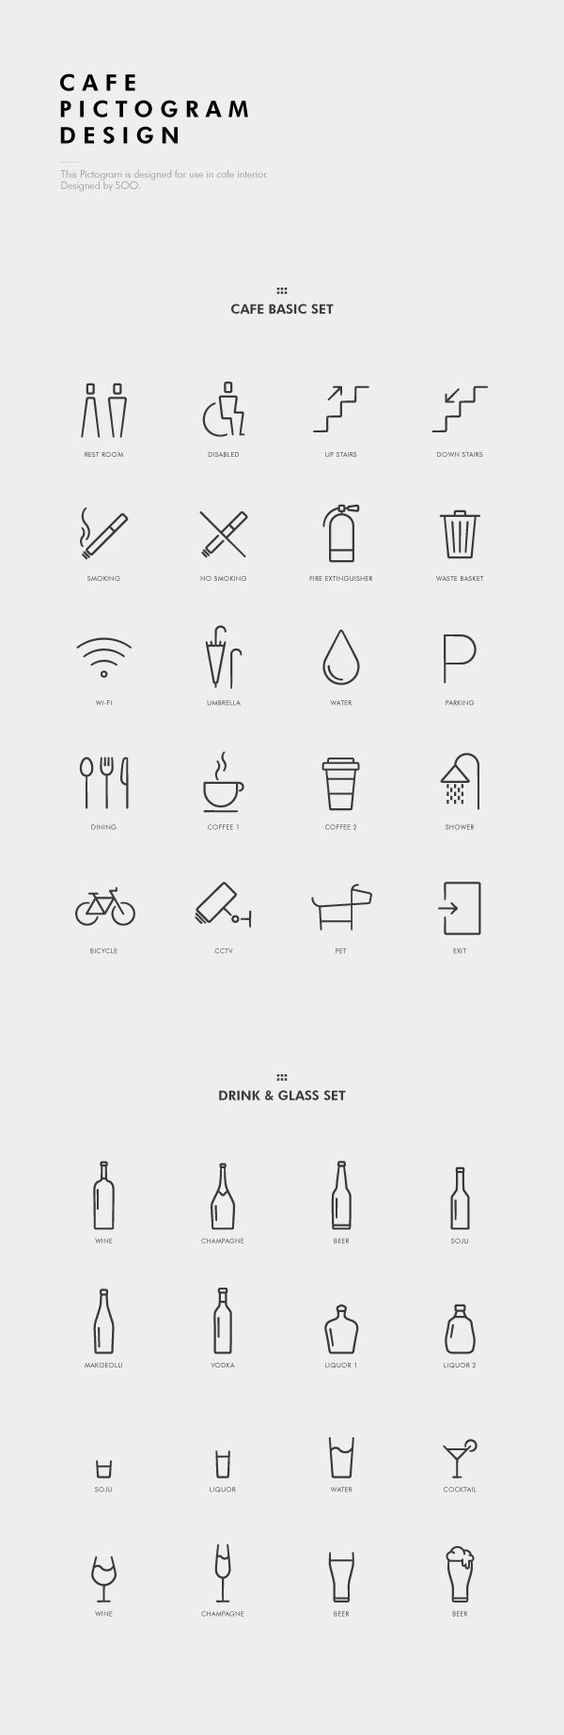 Cafe Pictogram Design by soo, via Behance: